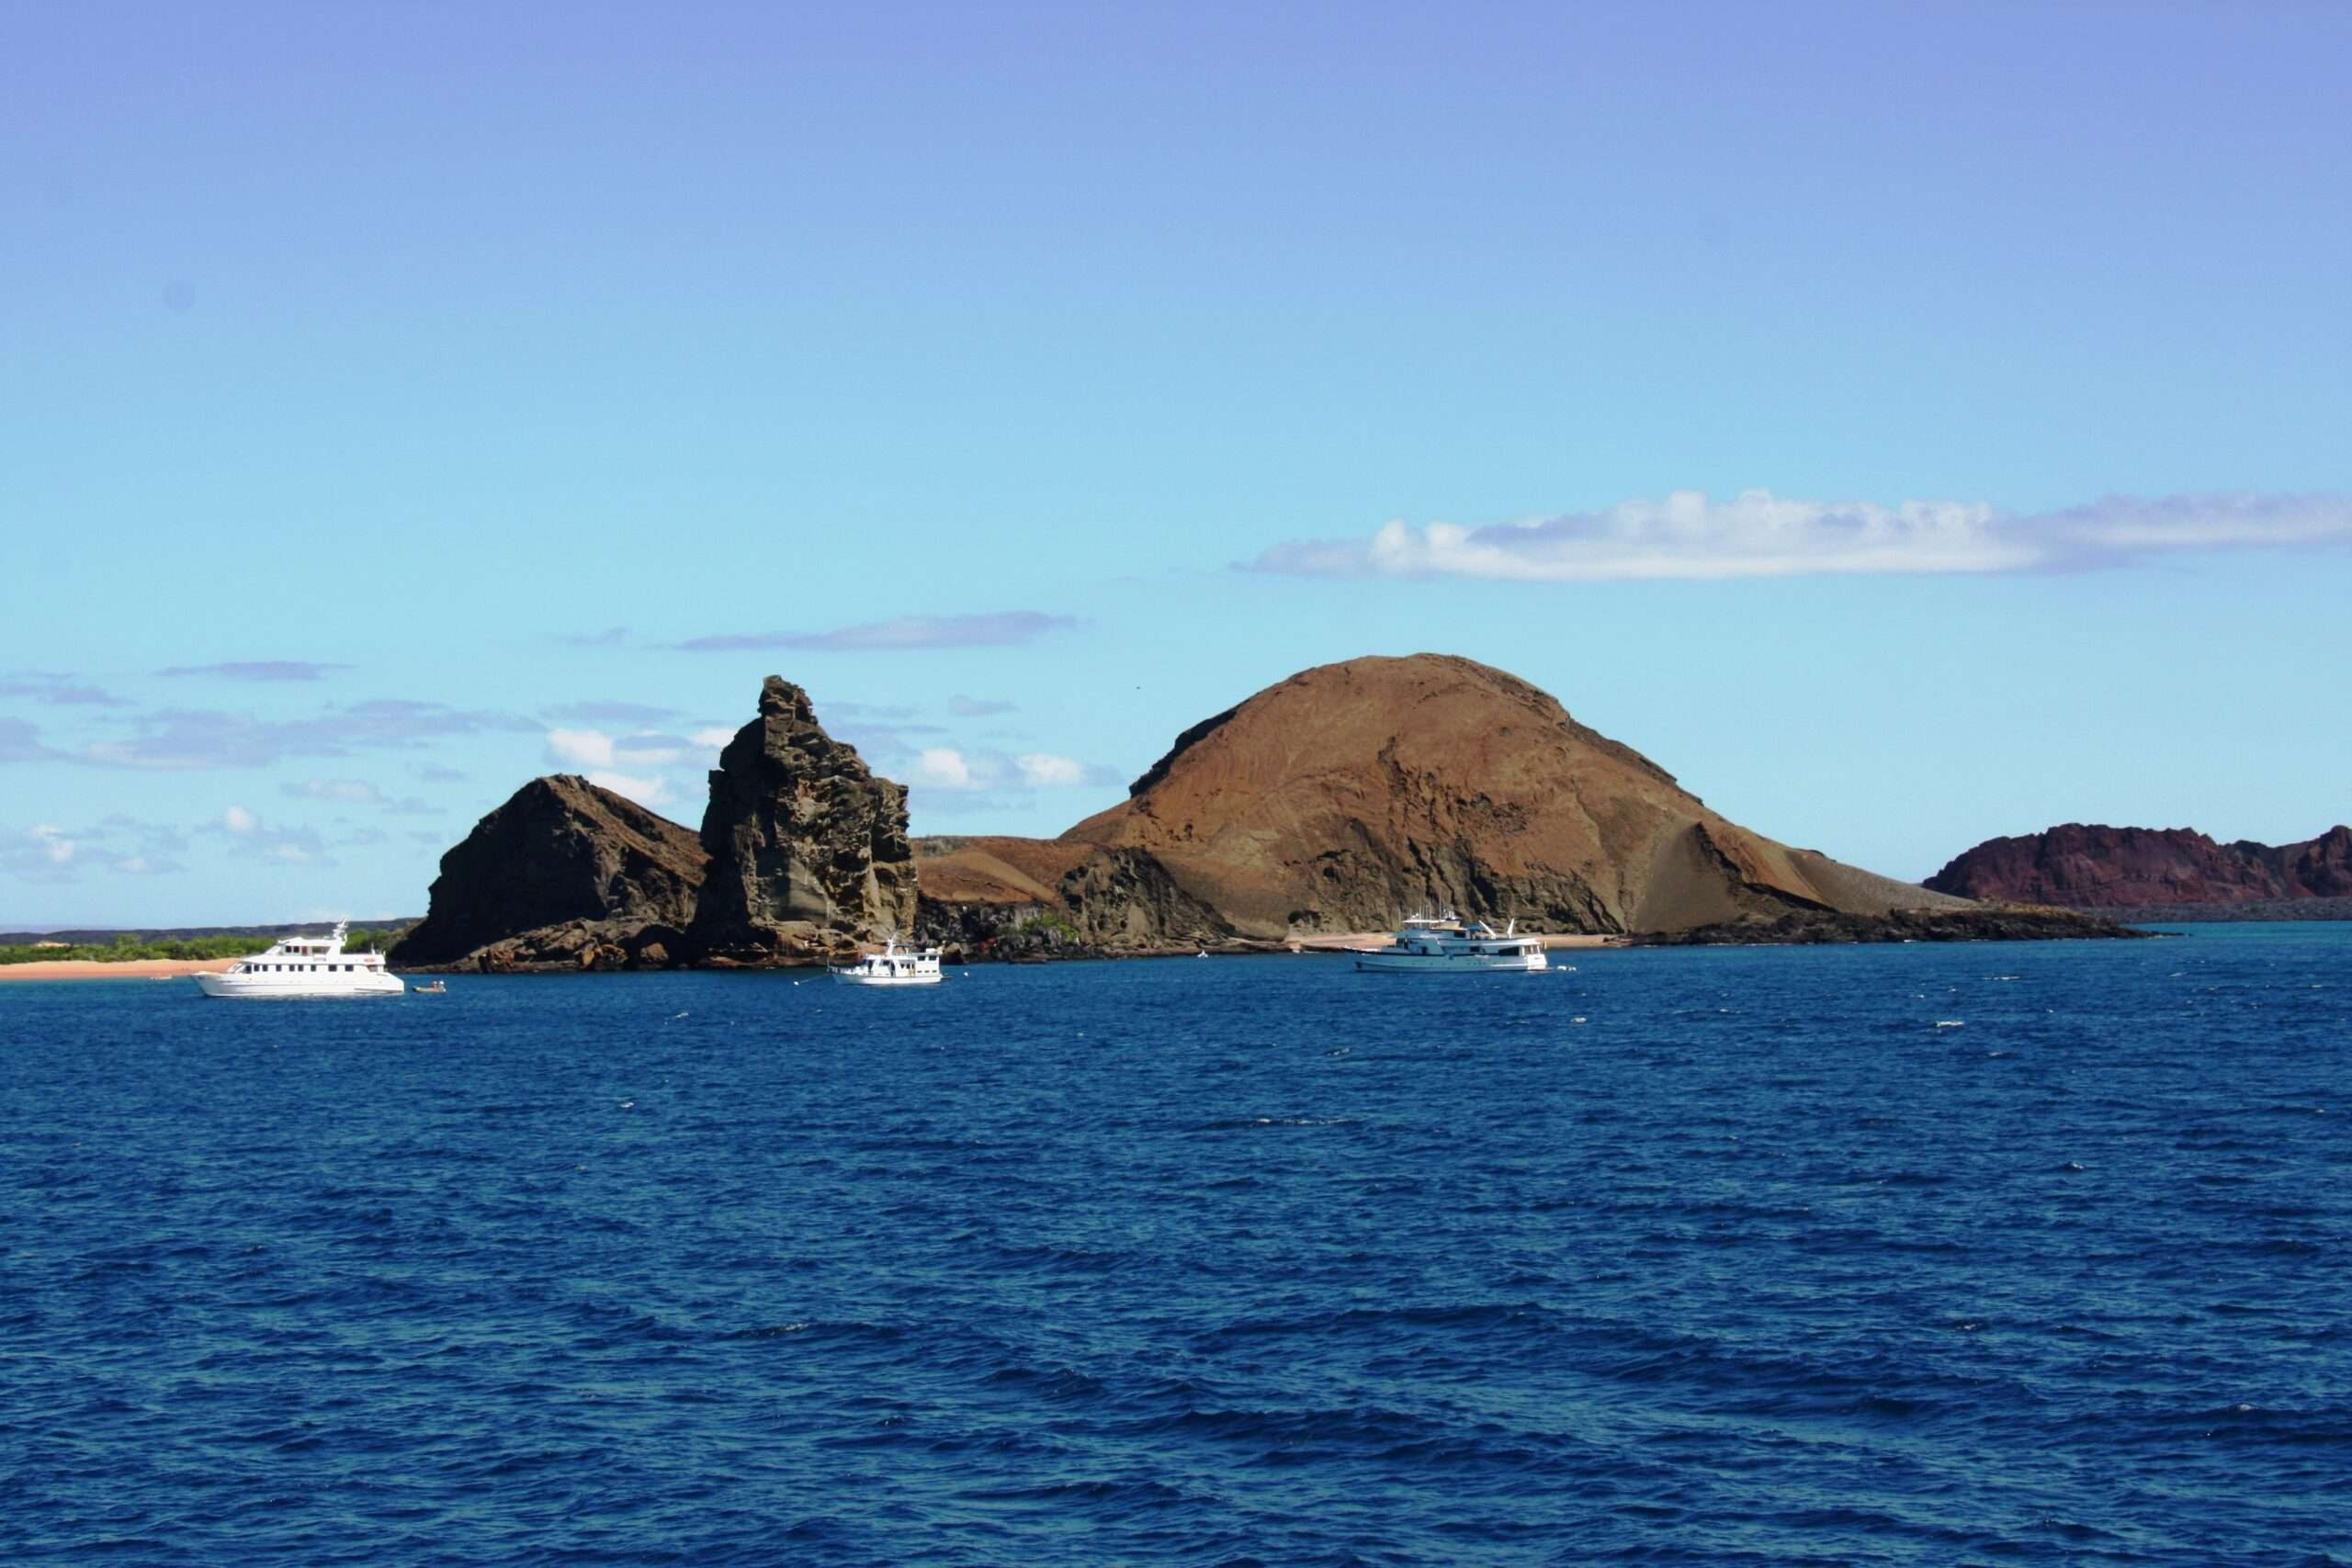 view of an island from the sea during Galápagos island travel